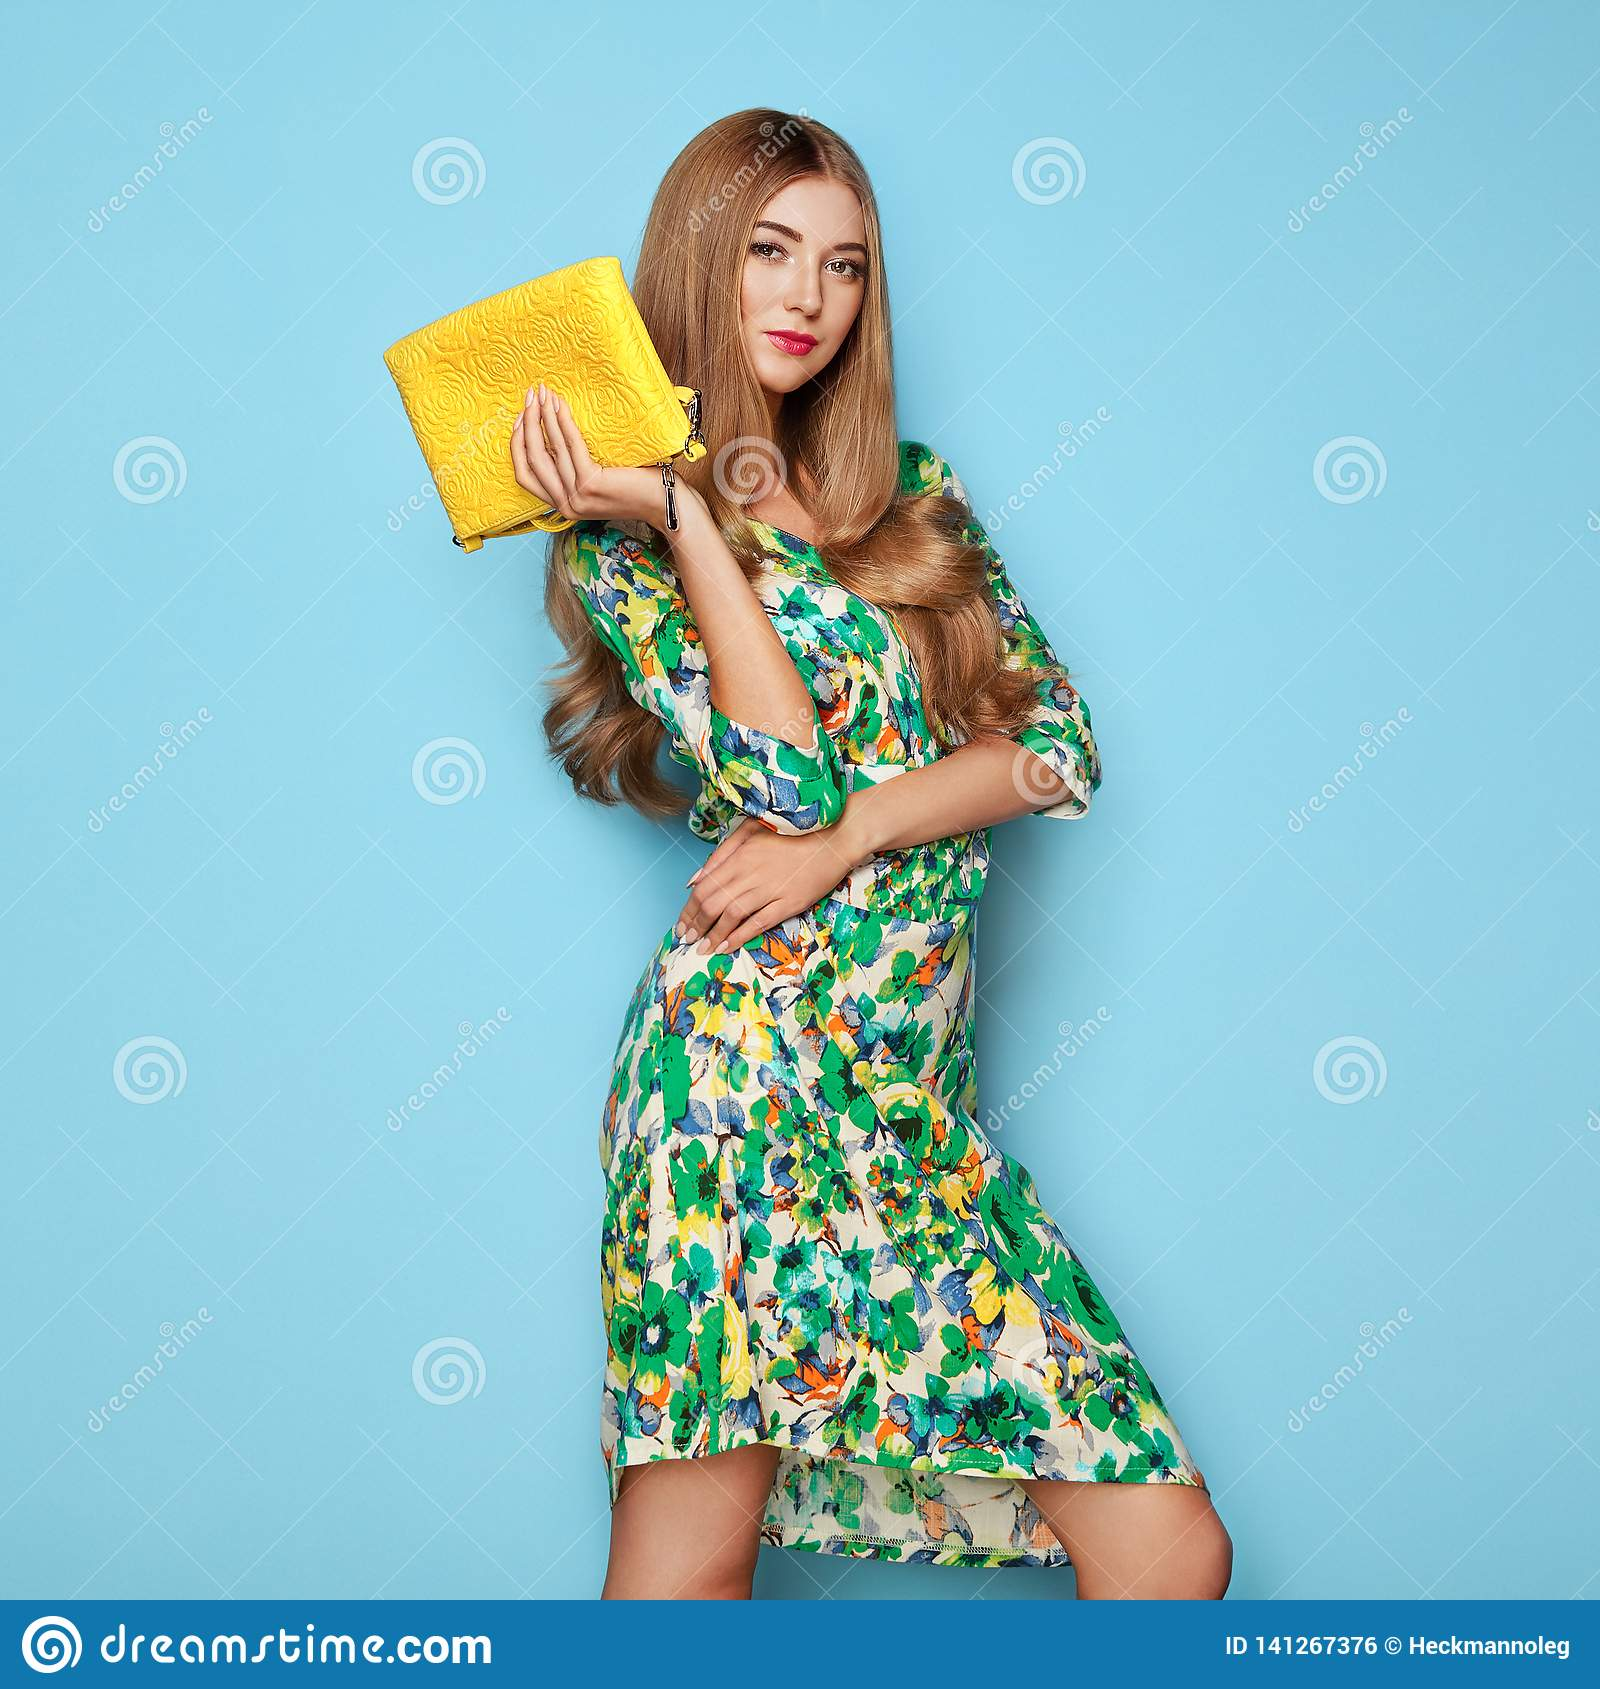 Blonde young woman in floral spring summer dress